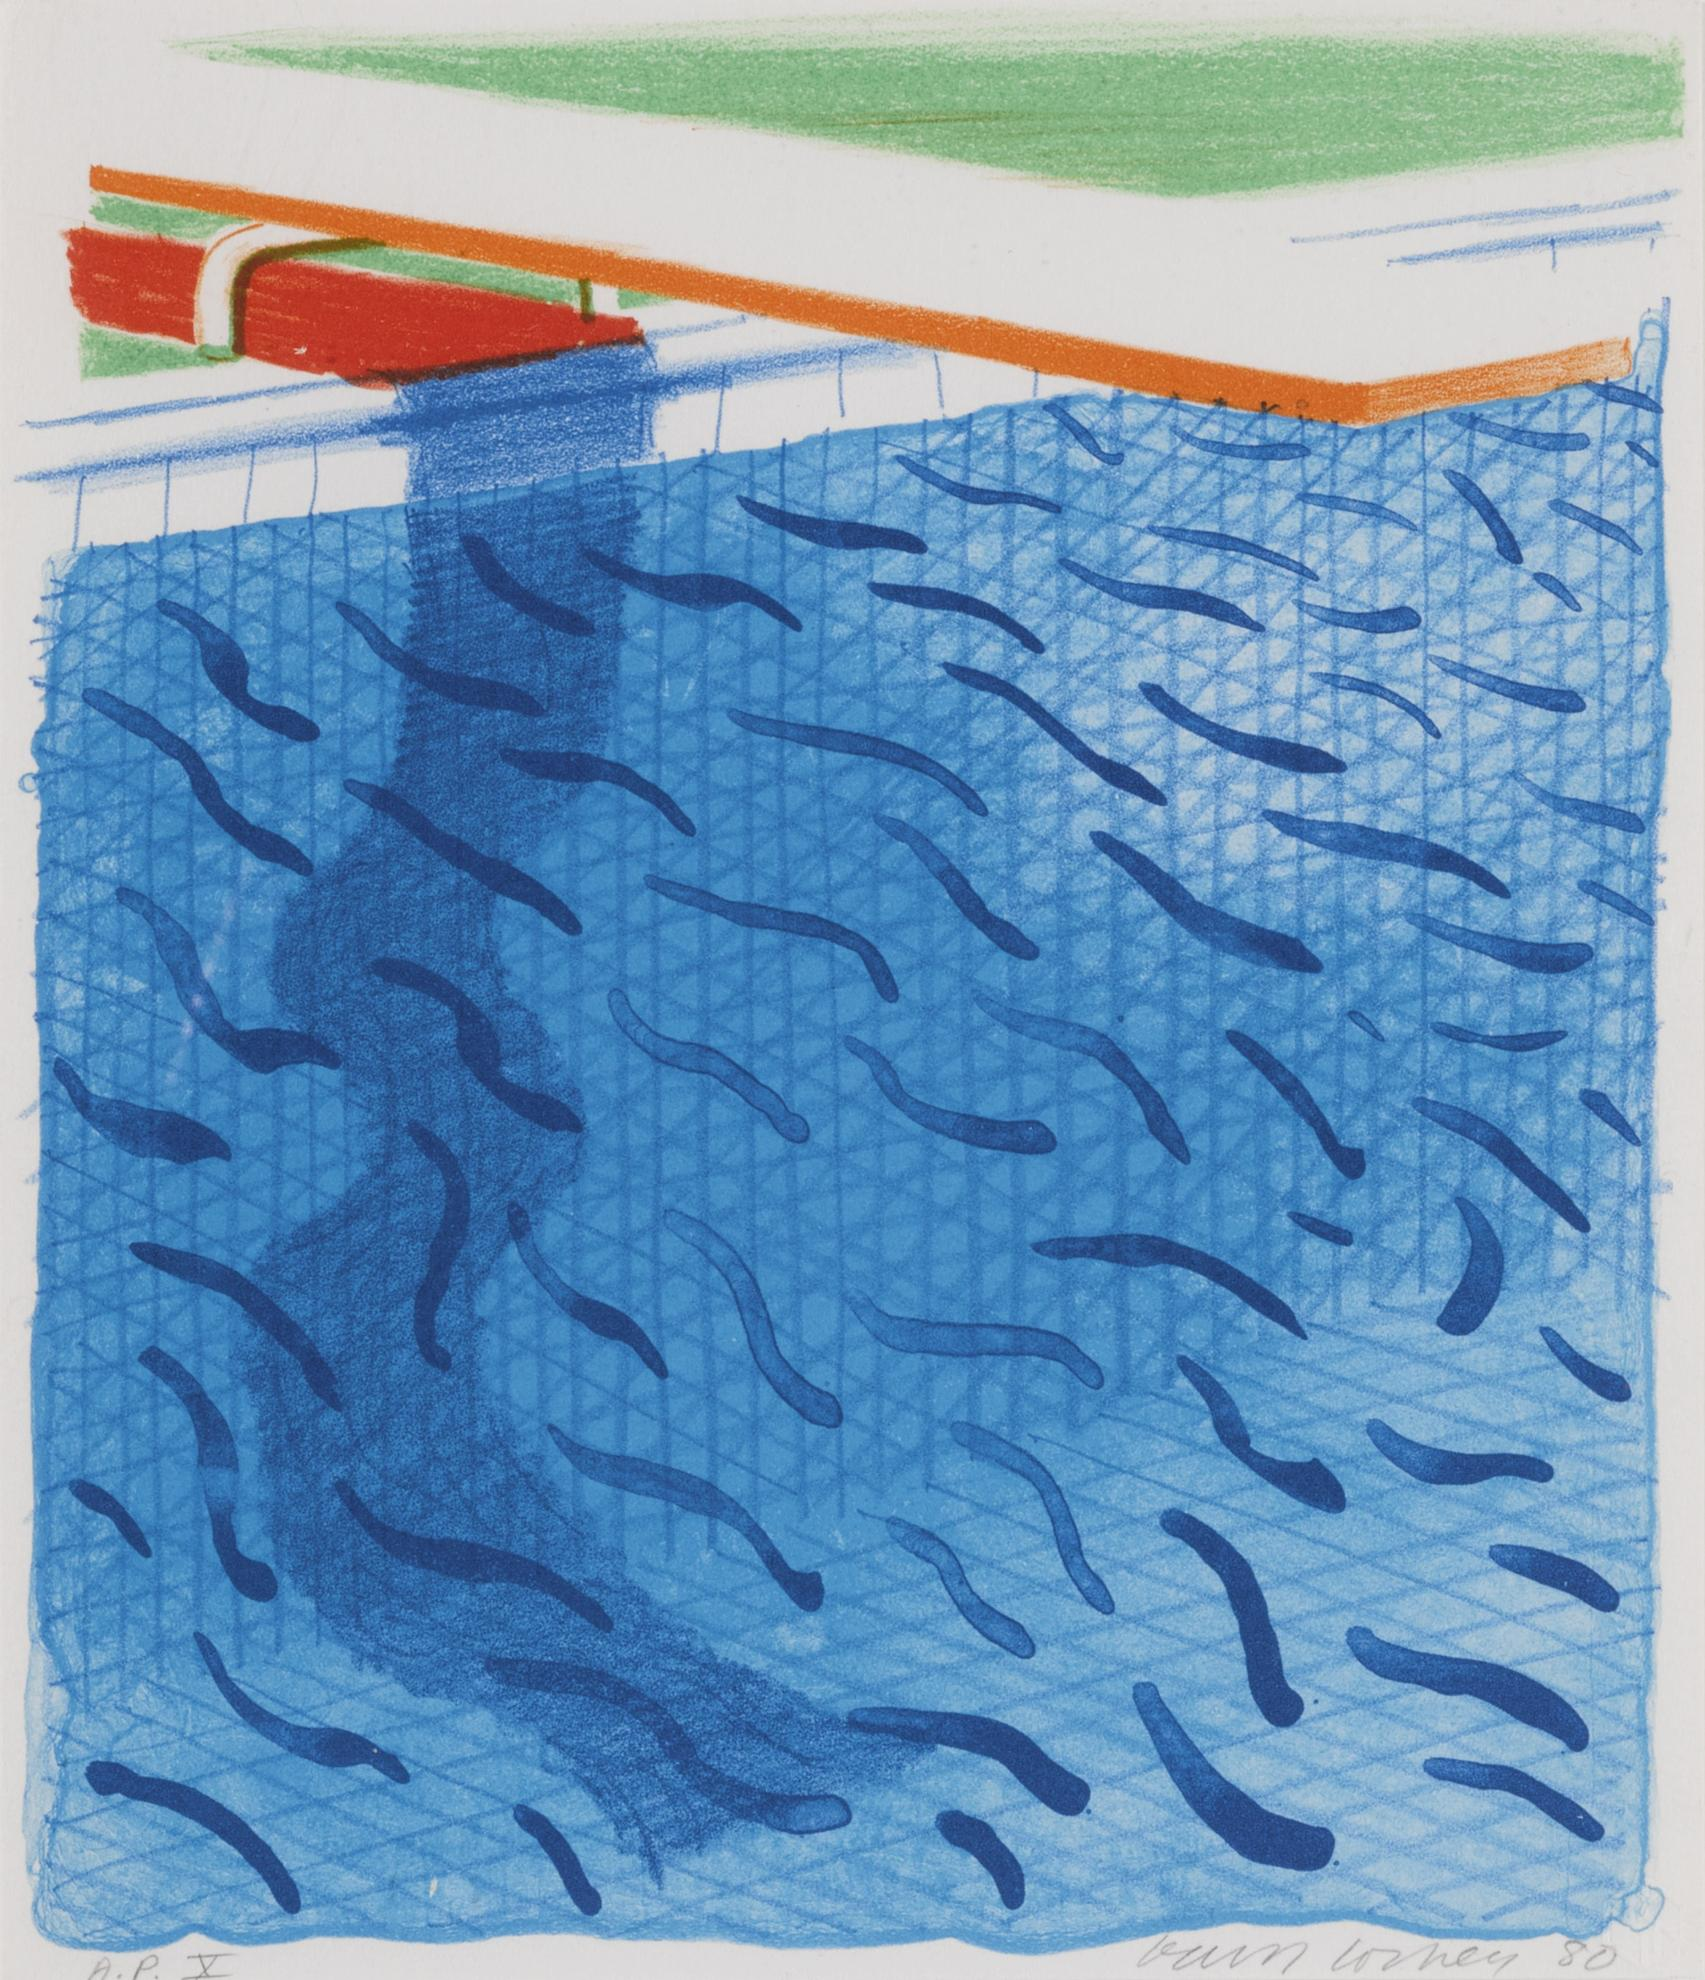 David Hockney-Pool Made With Paper And Blue Ink For Book (M.C.A.T. 234)-1980